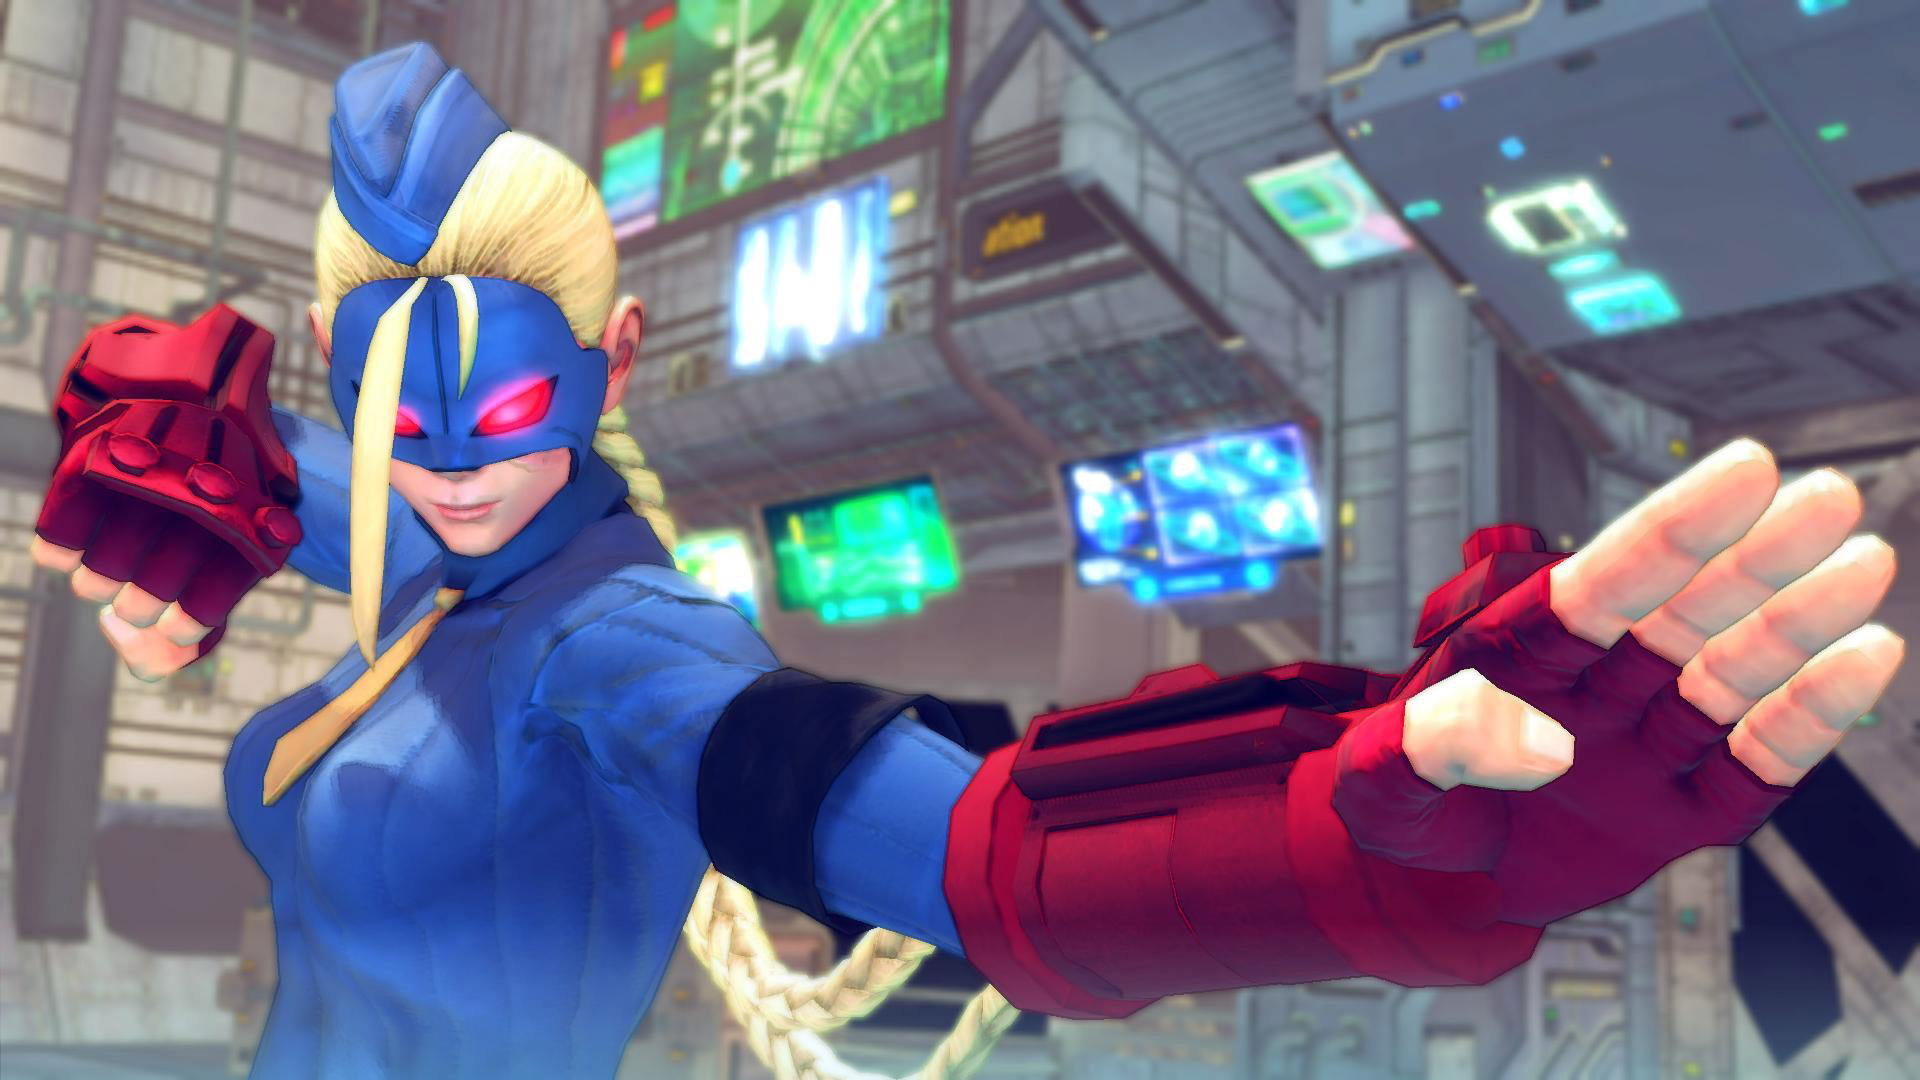 Decapre artwork and screen shots for Ultra Street Fighter 4 image #4